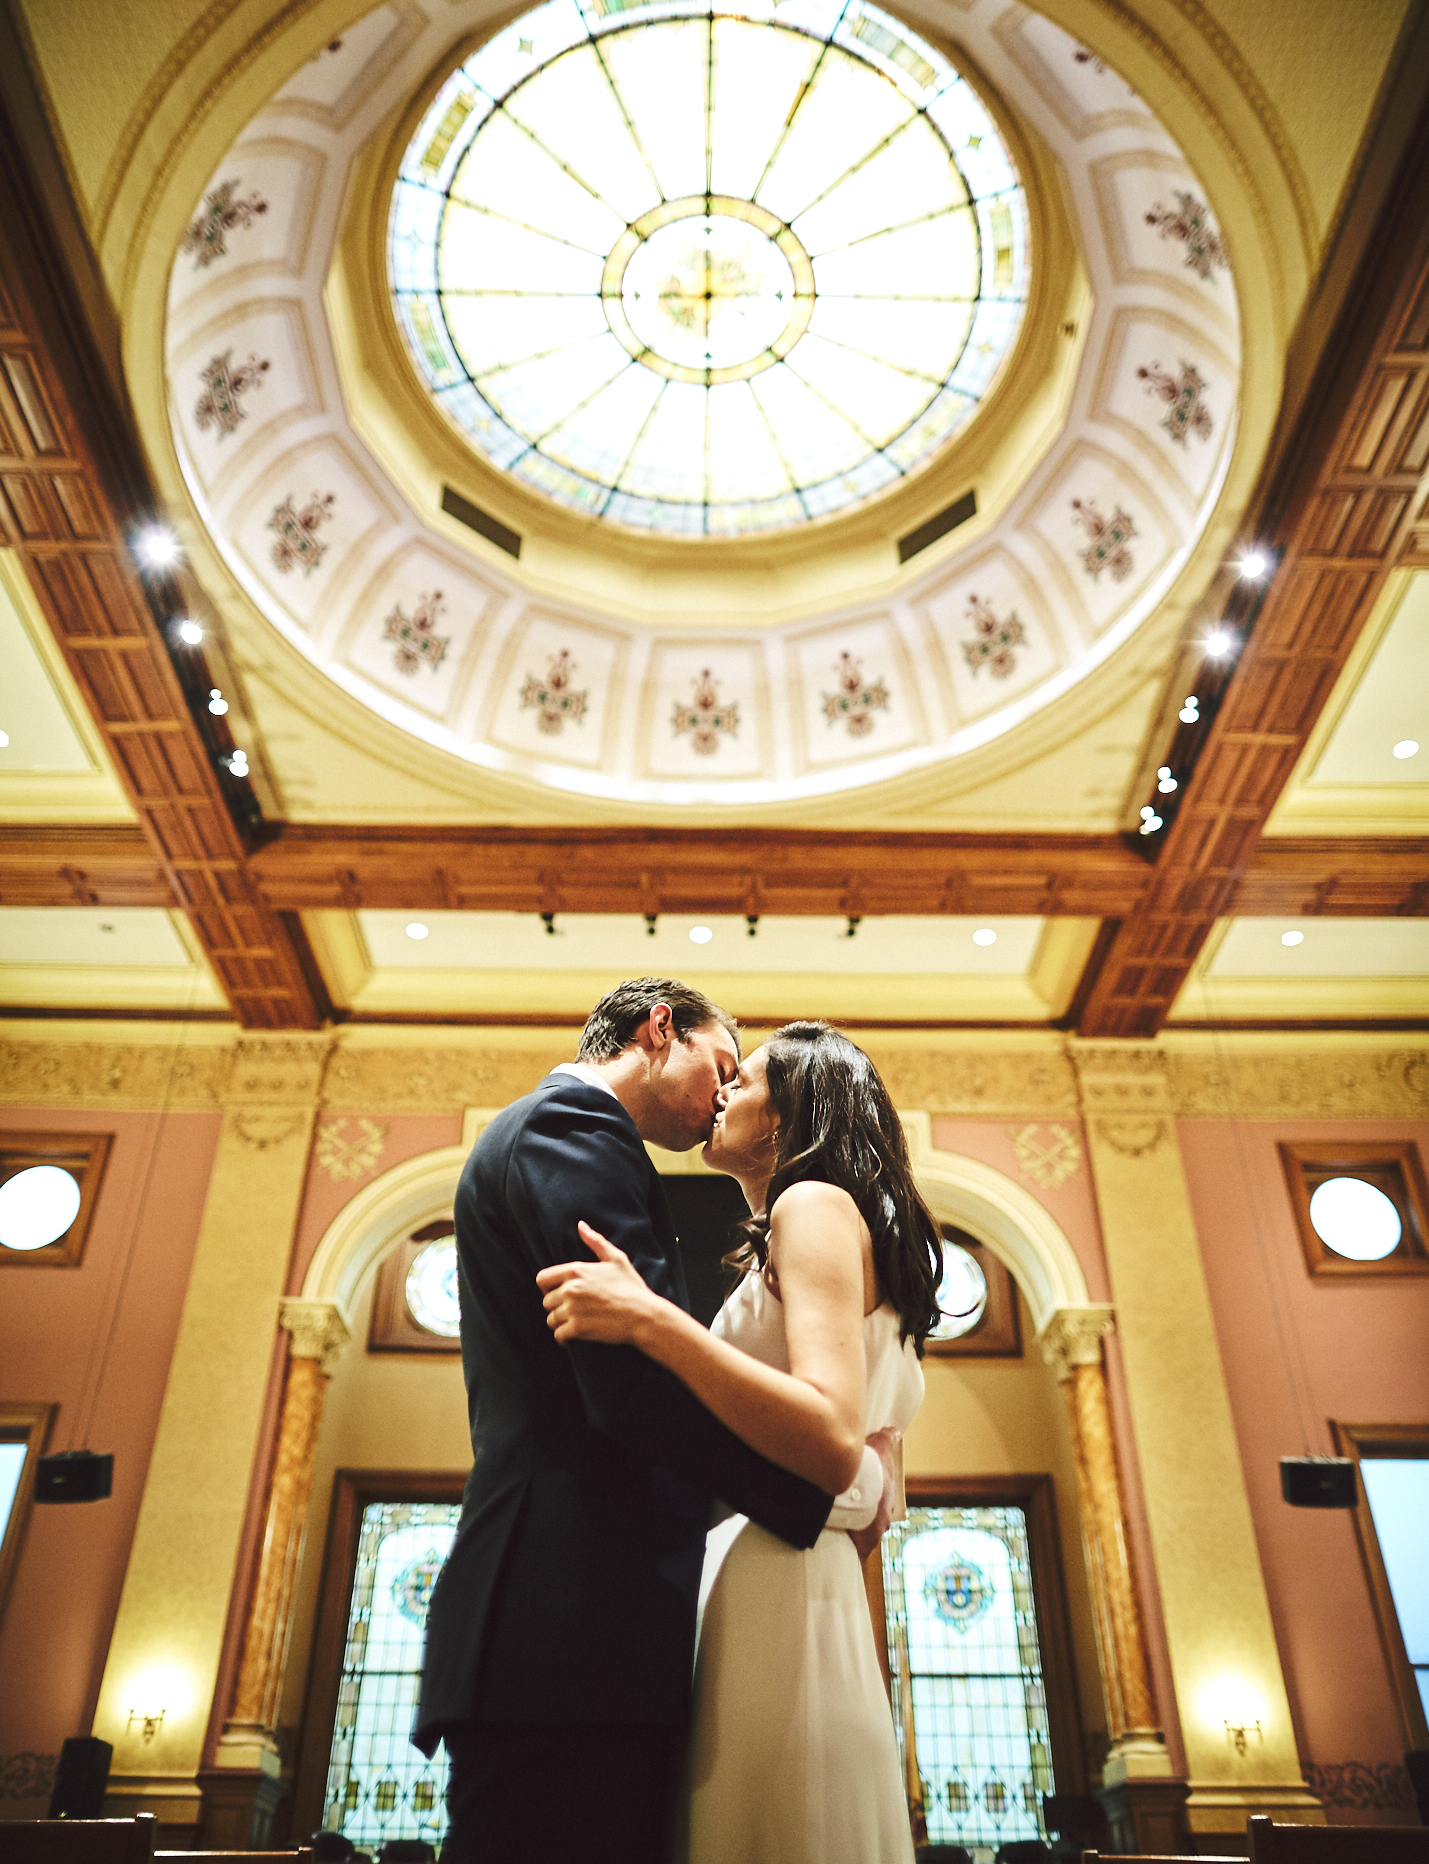 181116_JerseyCityCityHallFallWeddingPhotography_JerseyCityWeddingPhotographer_By_BriJohnsonWeddings_0076.jpg